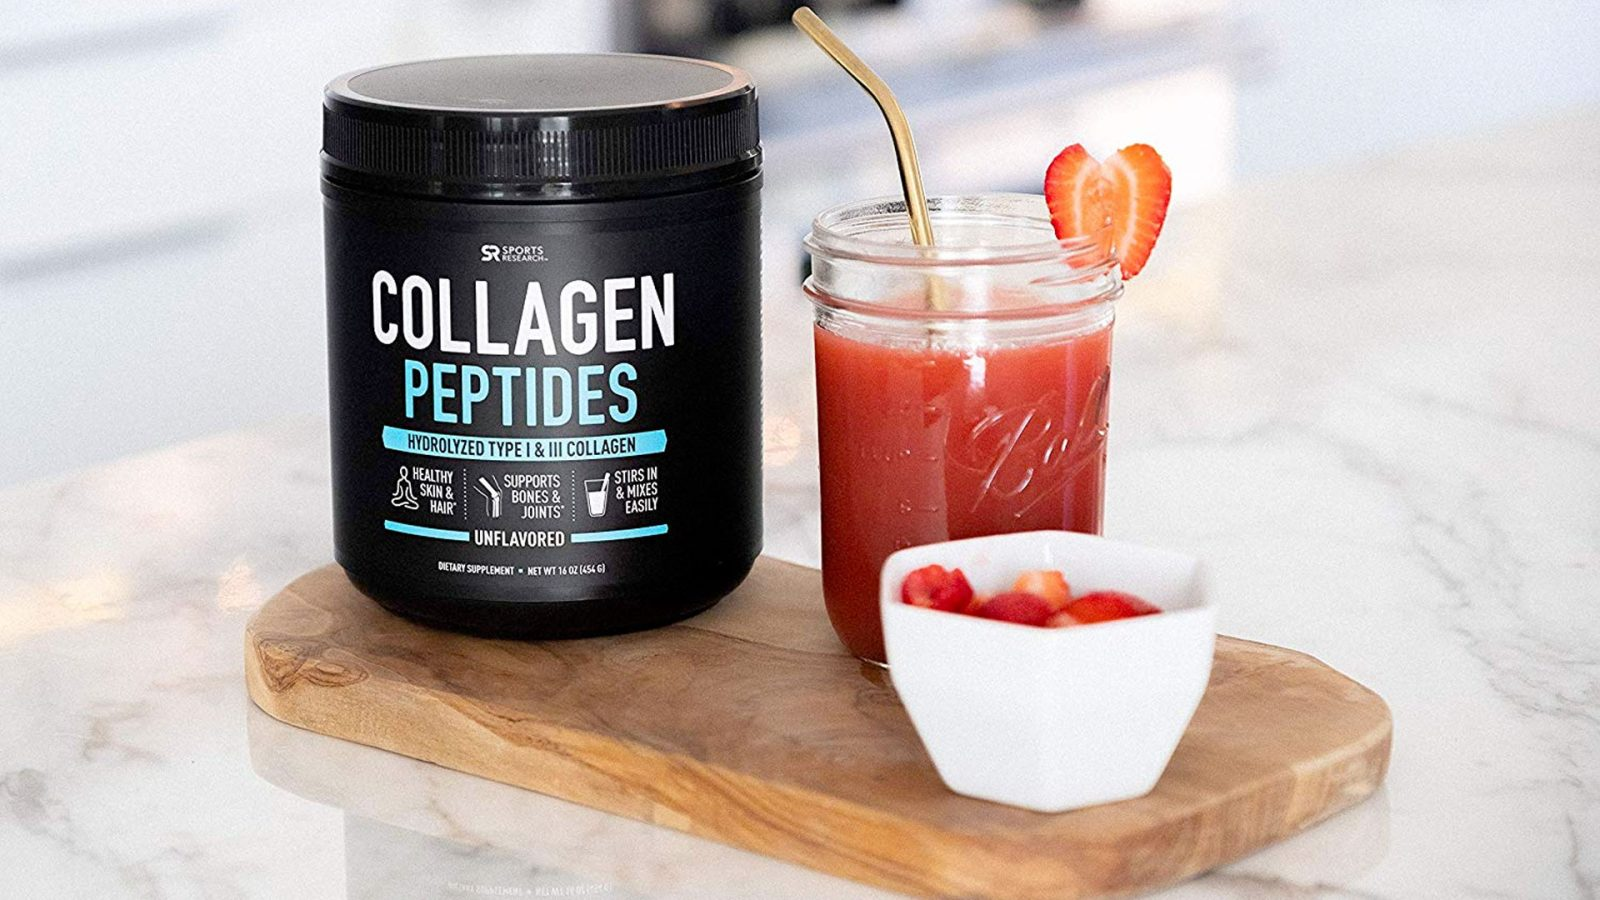 Stay toned in 2020 with collagen peptides and more from $16.50 at Amazon